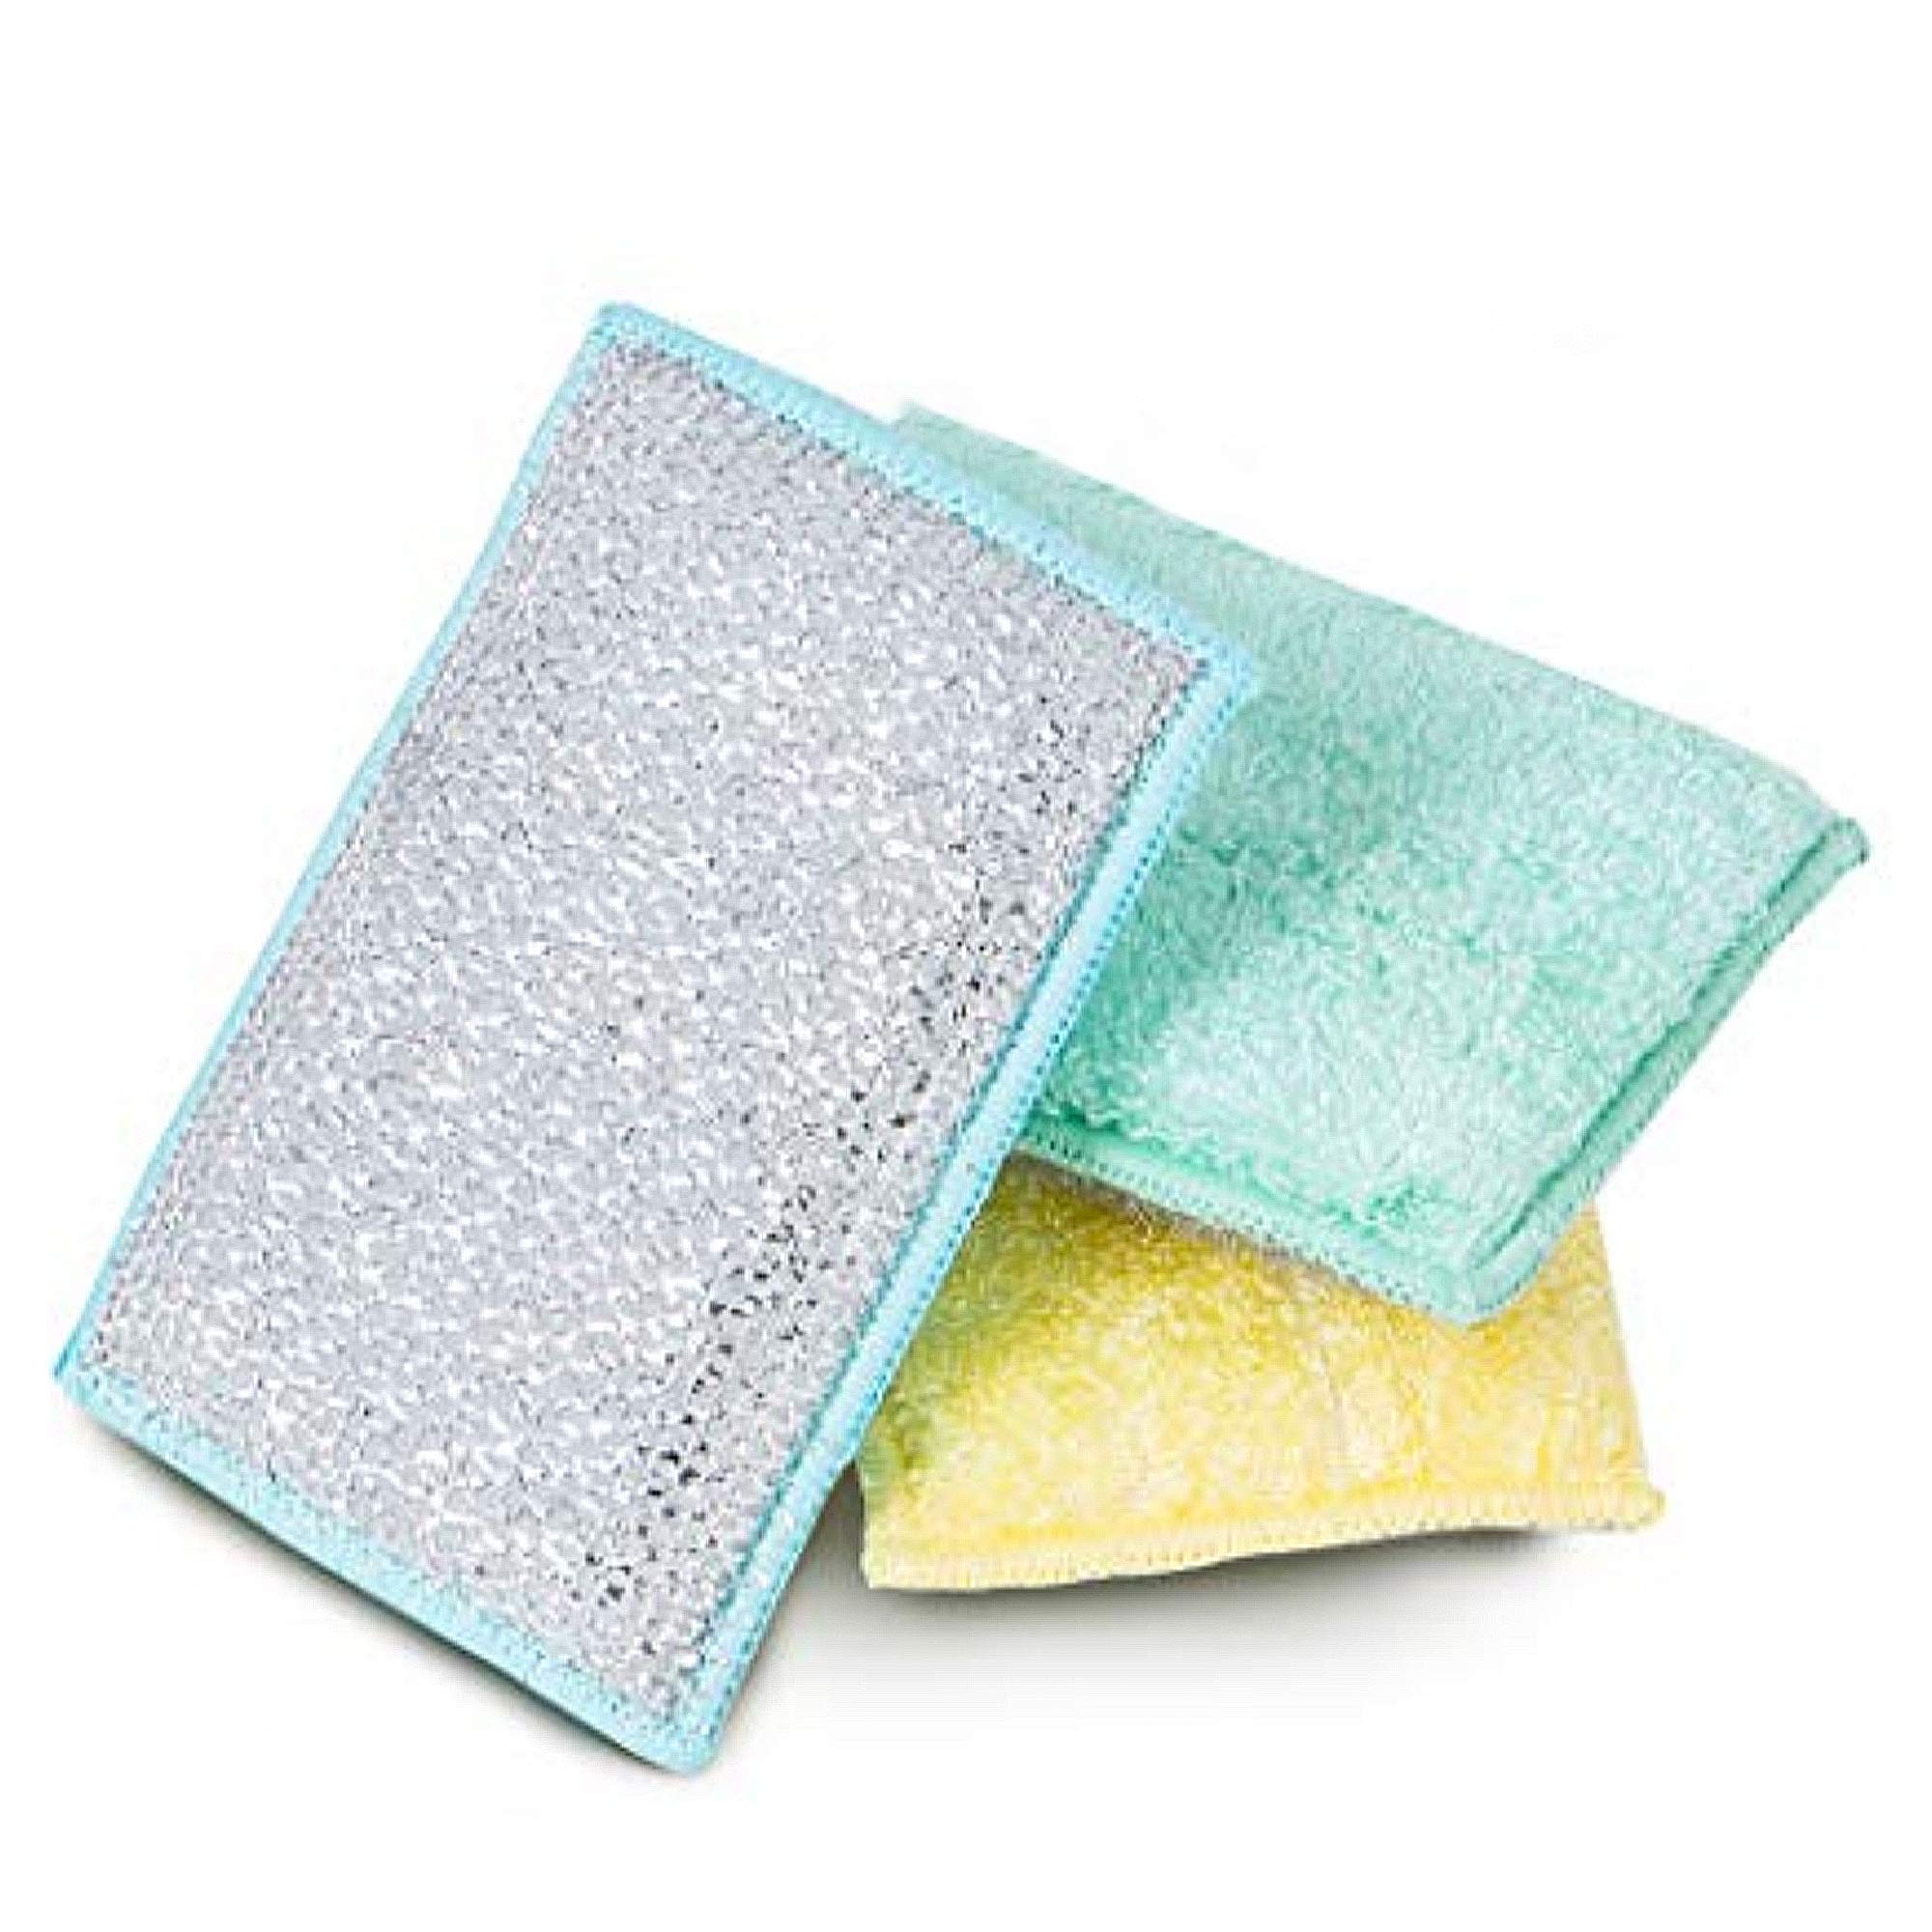 Smart Design SmartCloth Scrub Sponge w/Antimicrobial Odorless Fibers - Ultra Absorbent - Soft & Metallic Scrub Side - for Cleaning, Dishes, Hard Stains - Kitchen (Heavy Duty 3 Pack) [Pastels]